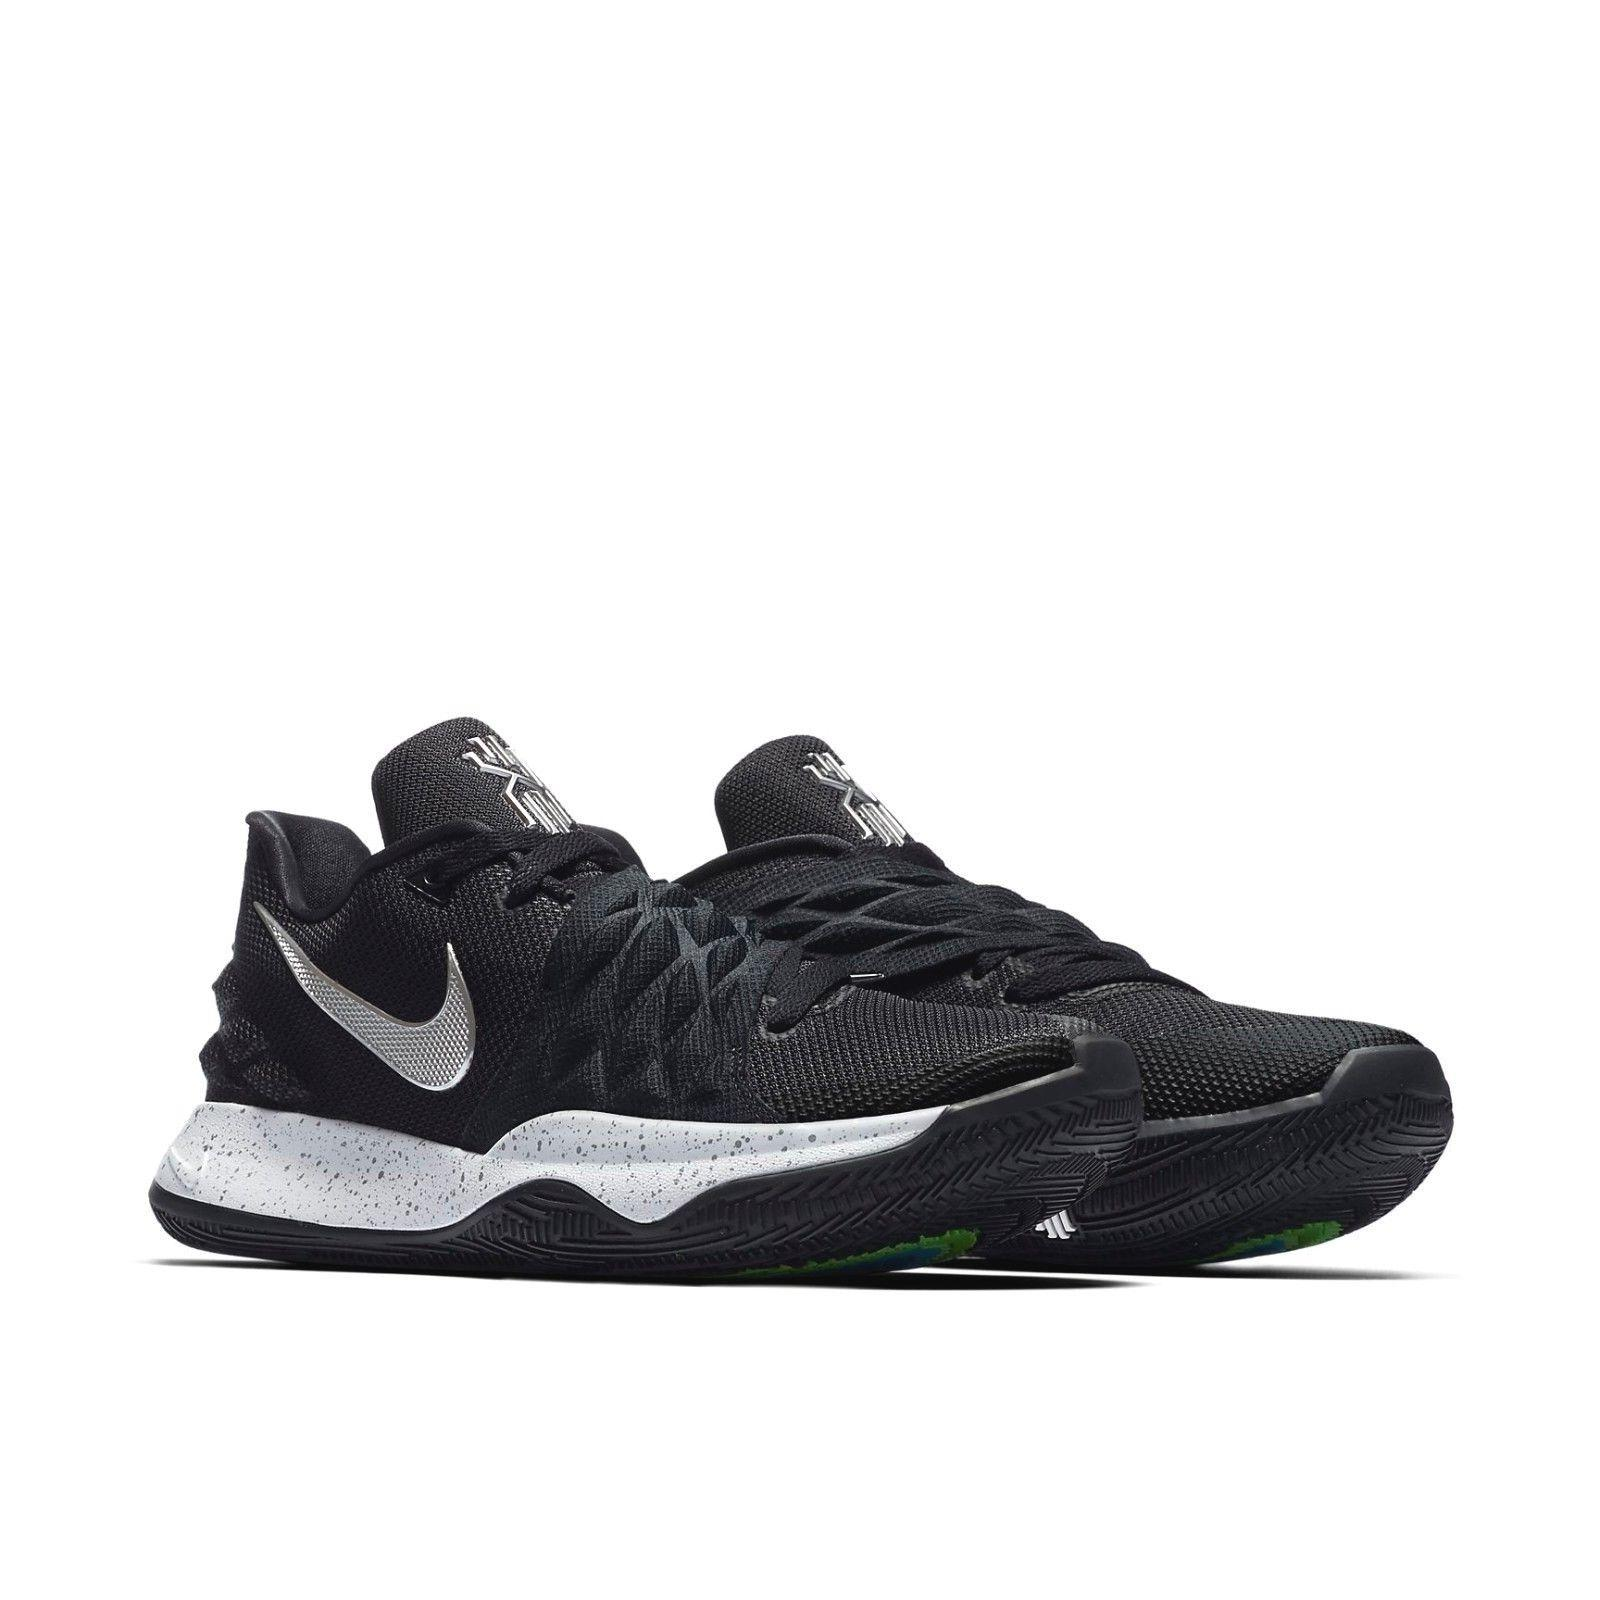 kyrie low mens basketball shoes 10 5